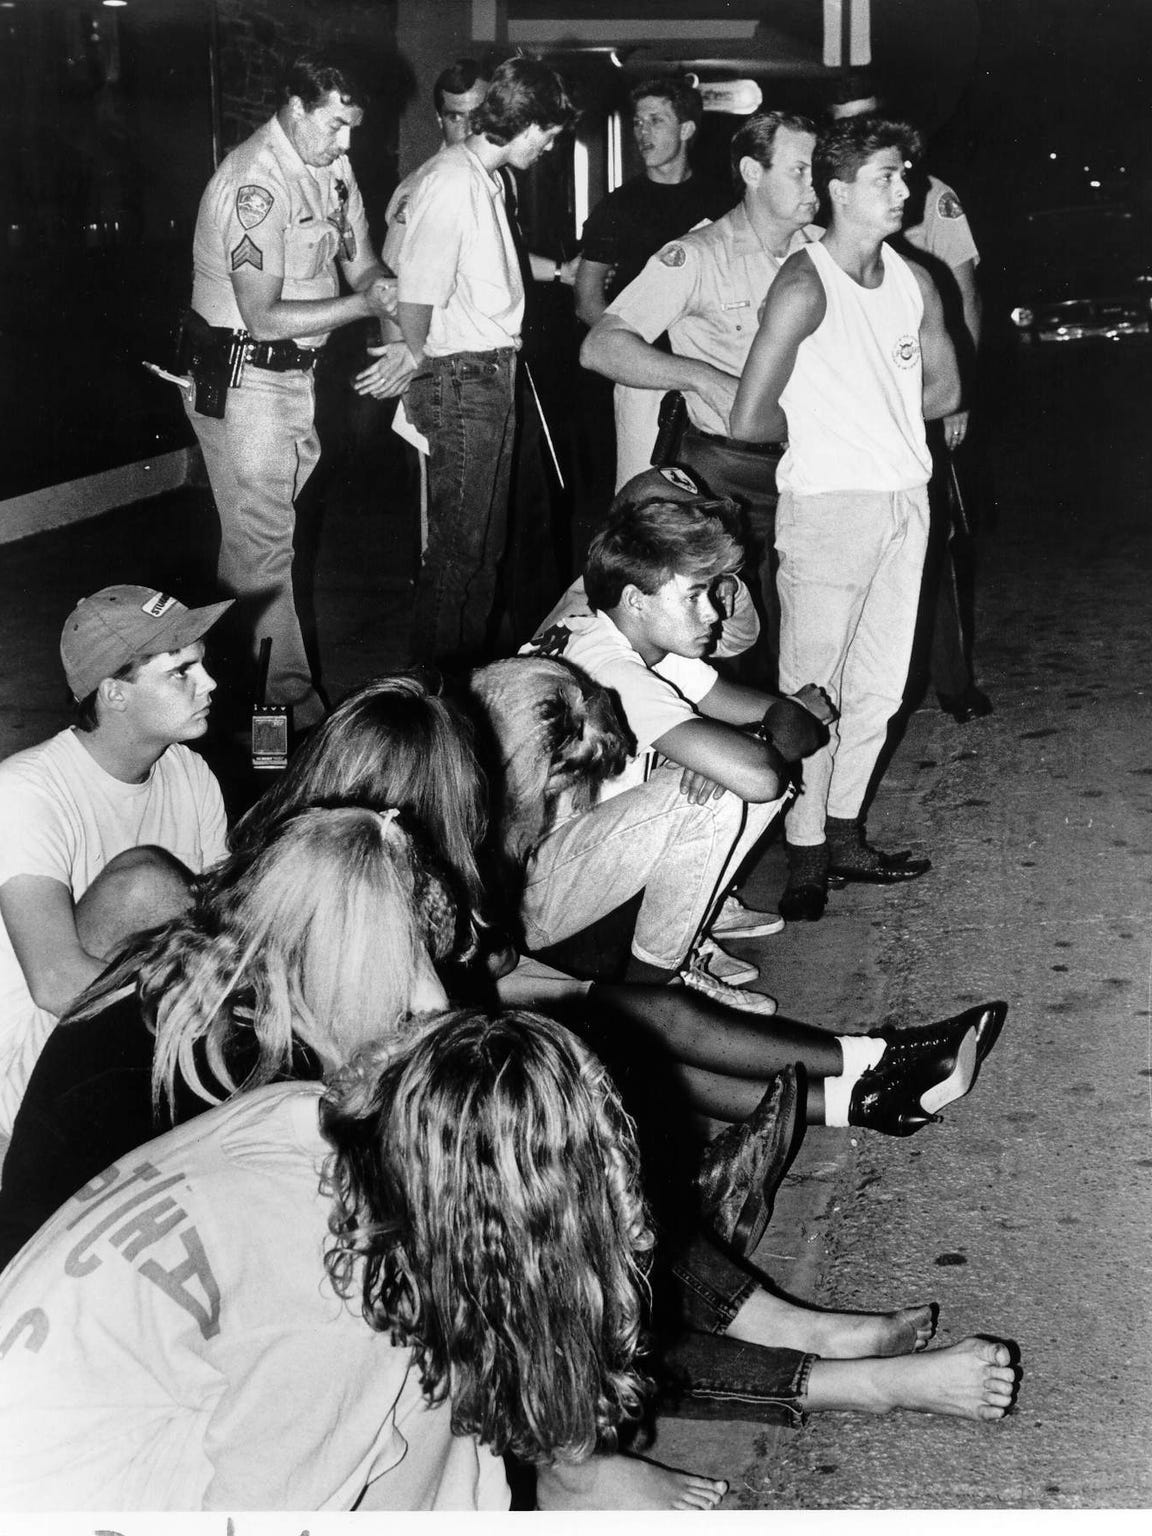 Palm Springs police arrested hundreds of spring breakers during a riot in 1986. The riot was the beginning of the end for spring break in the city.